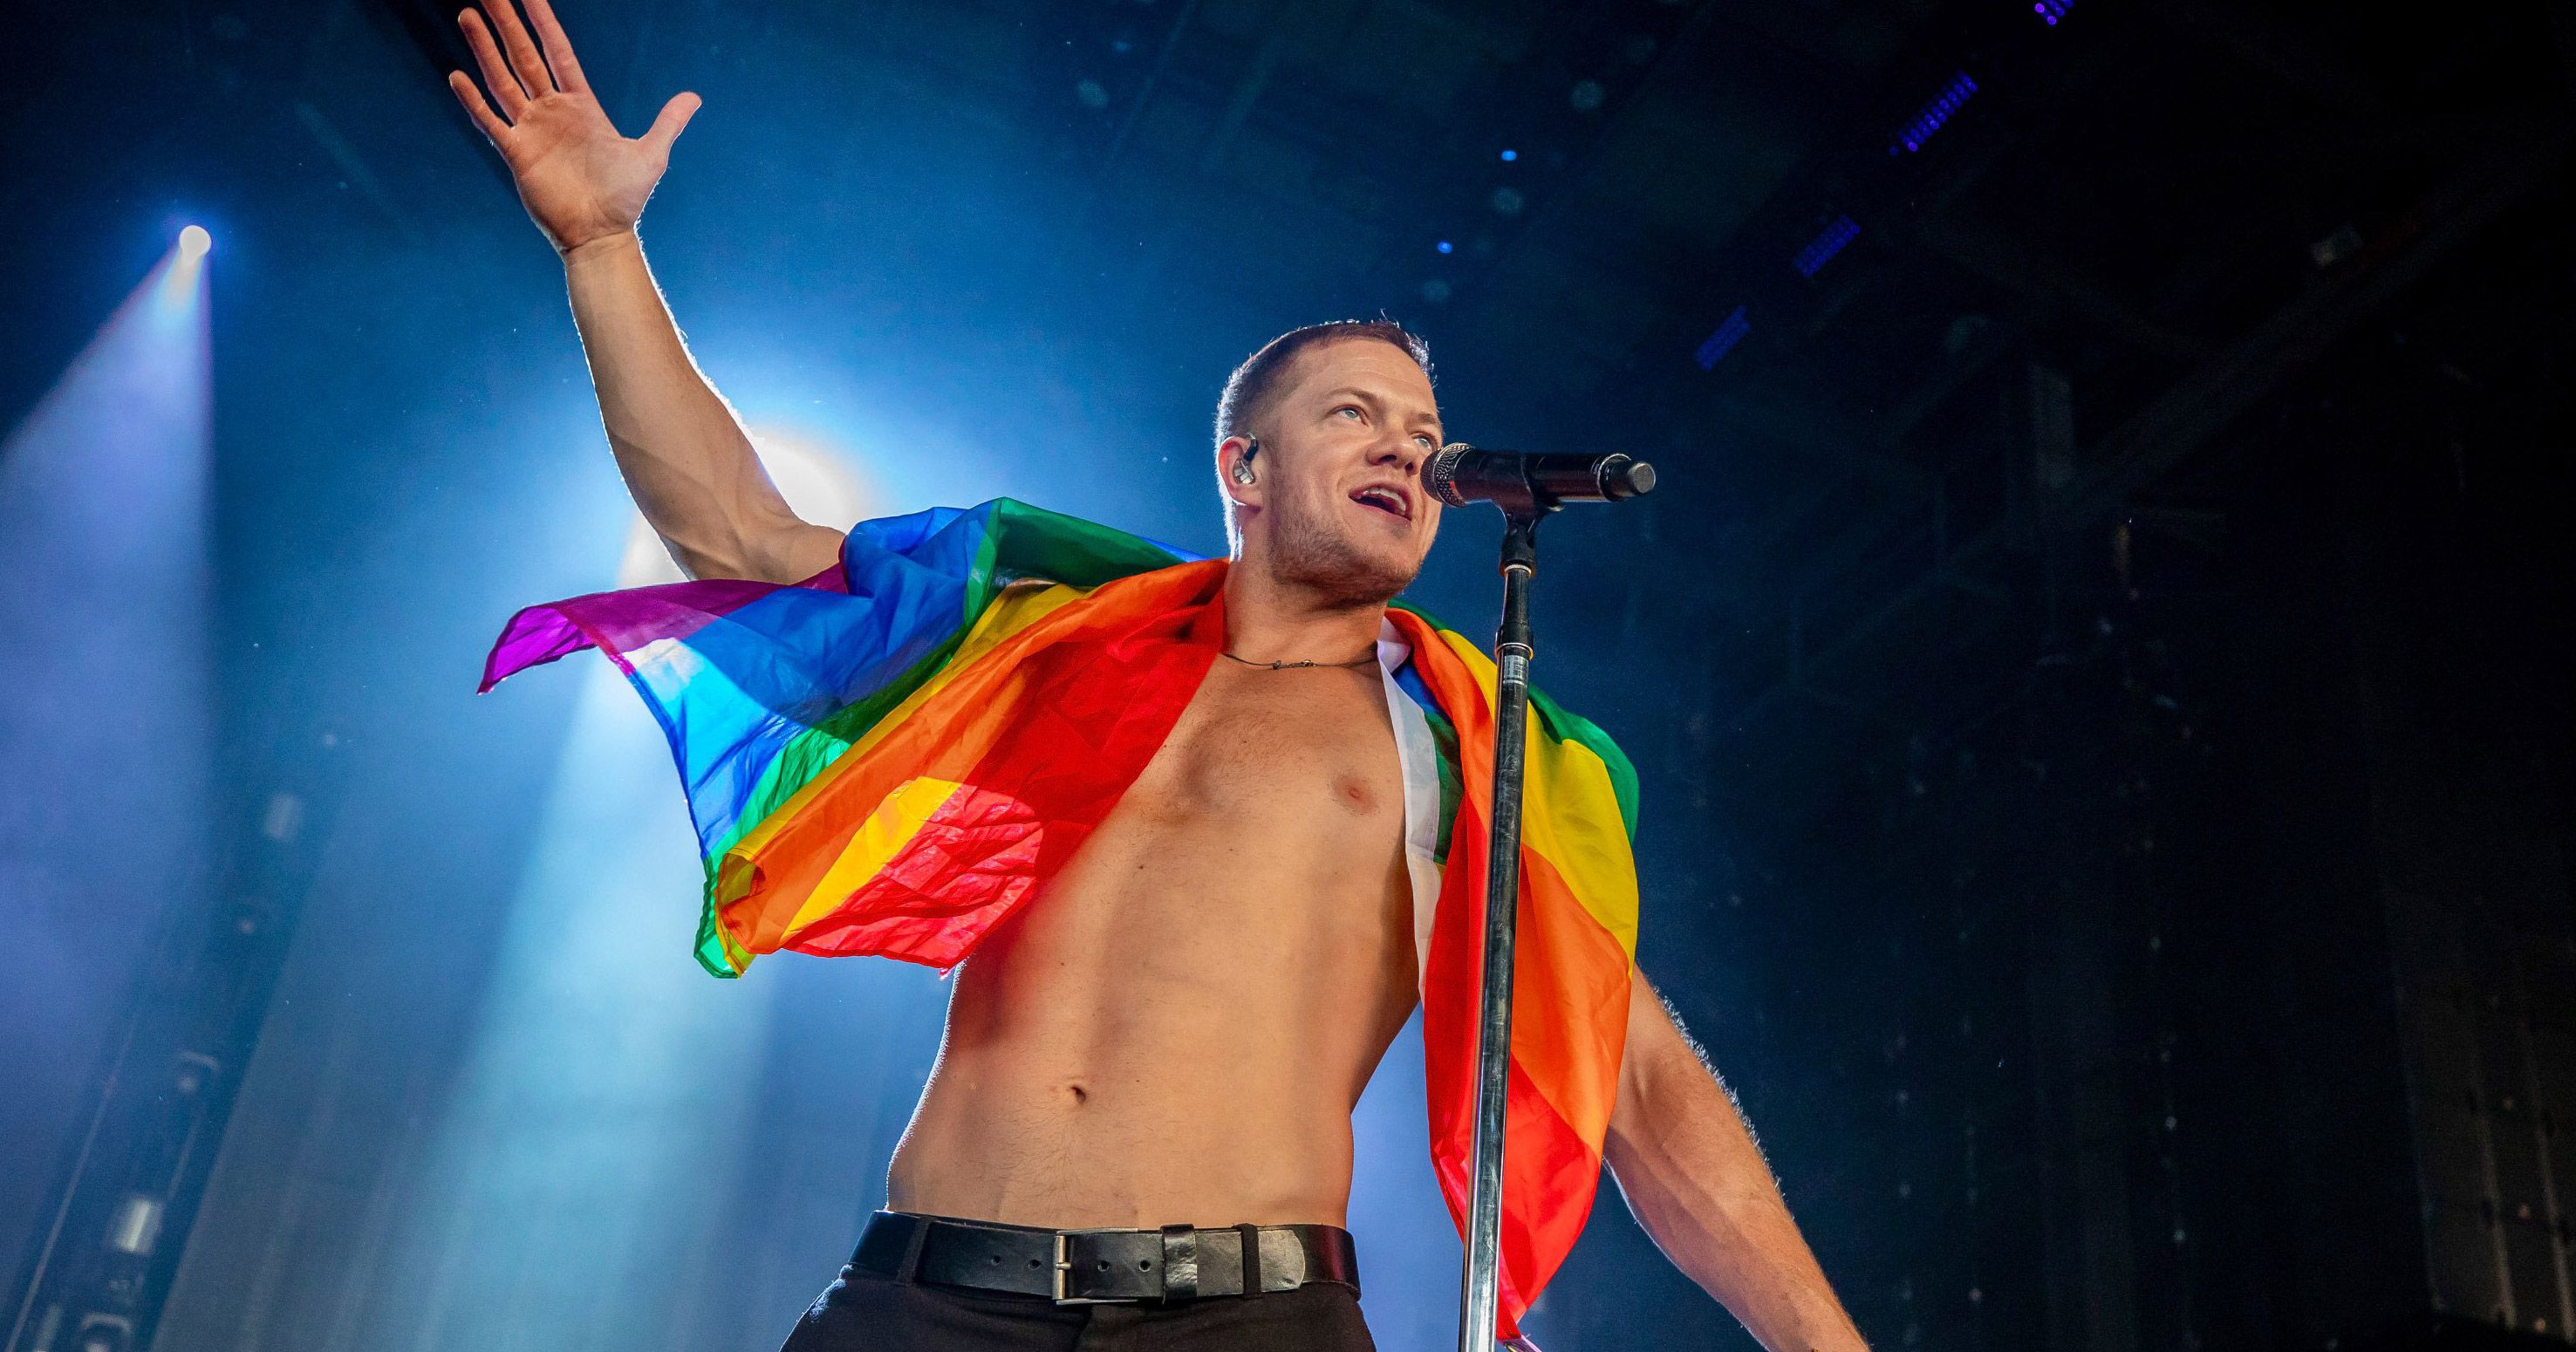 One of the LGBT communities allies, a topless Dan Reynolds draped in a rainbow flag